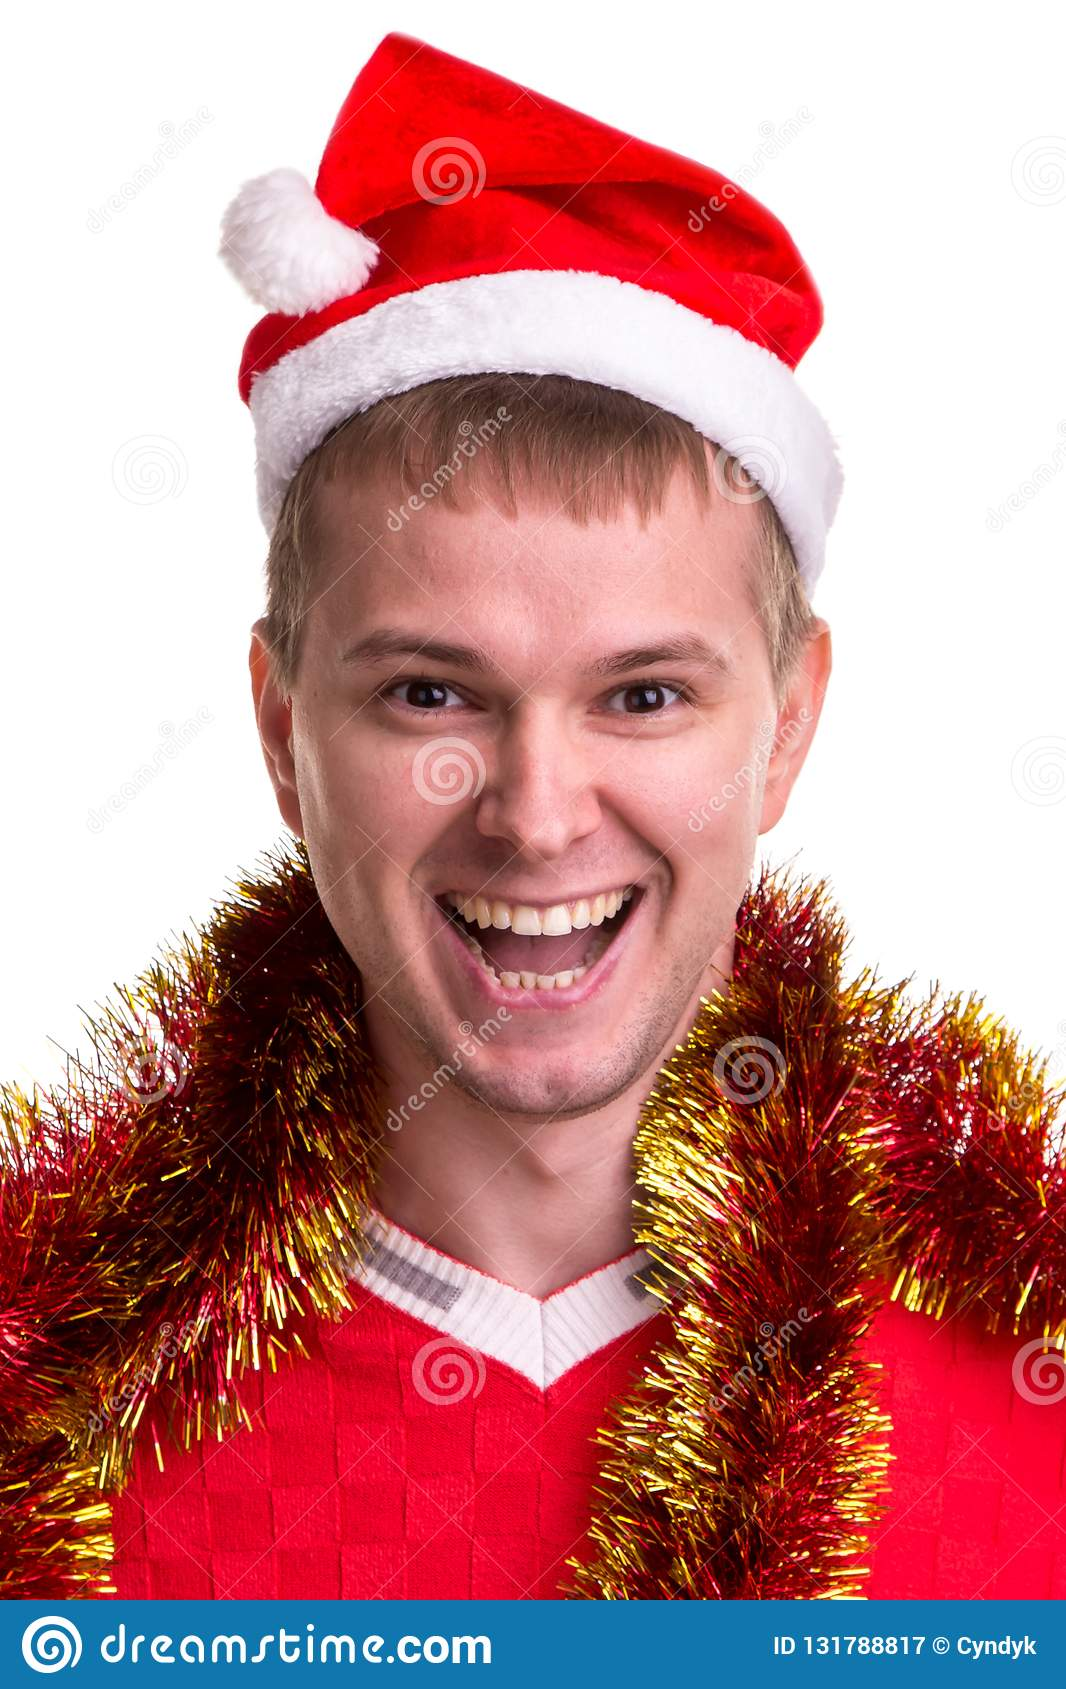 Thinking For Christmas Gift Ideas Funny Smiling Guy With A Santa